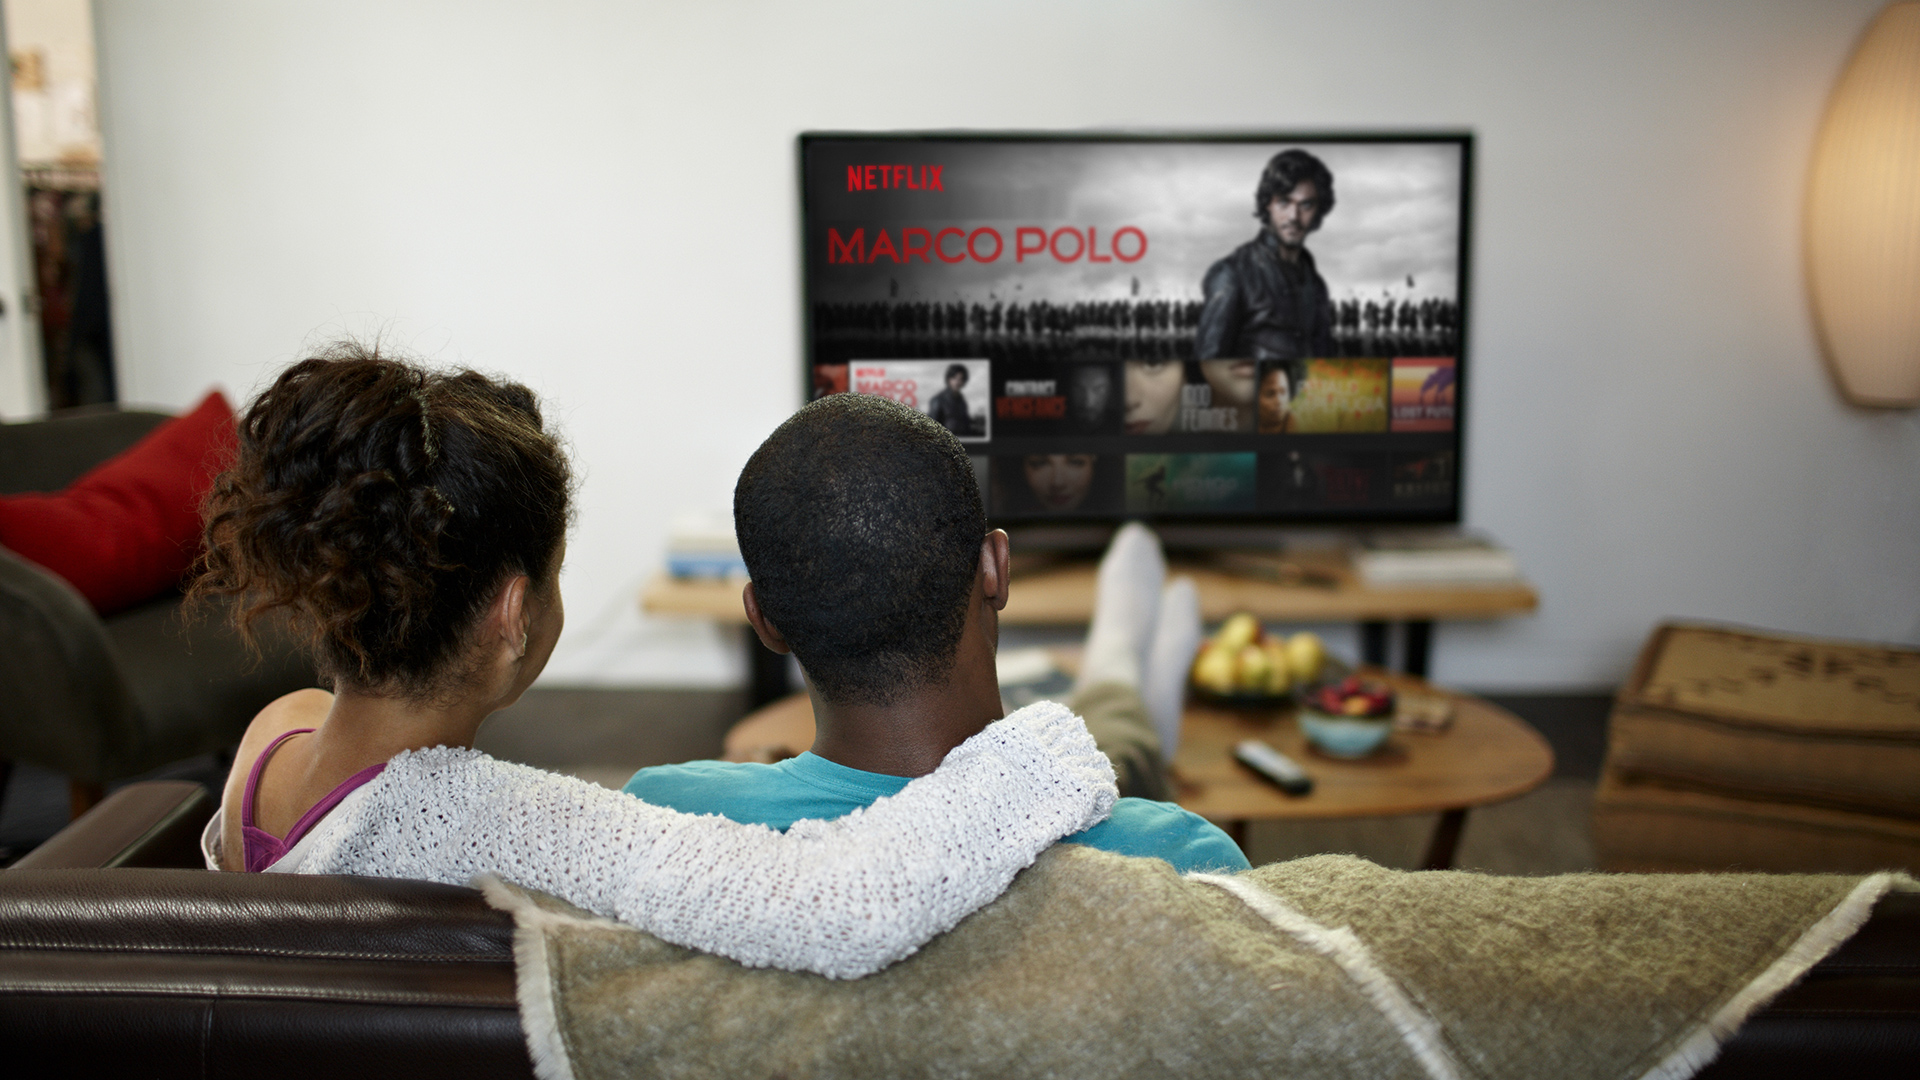 Netflix reduces bitrate of its streams in Australia to combat congestion